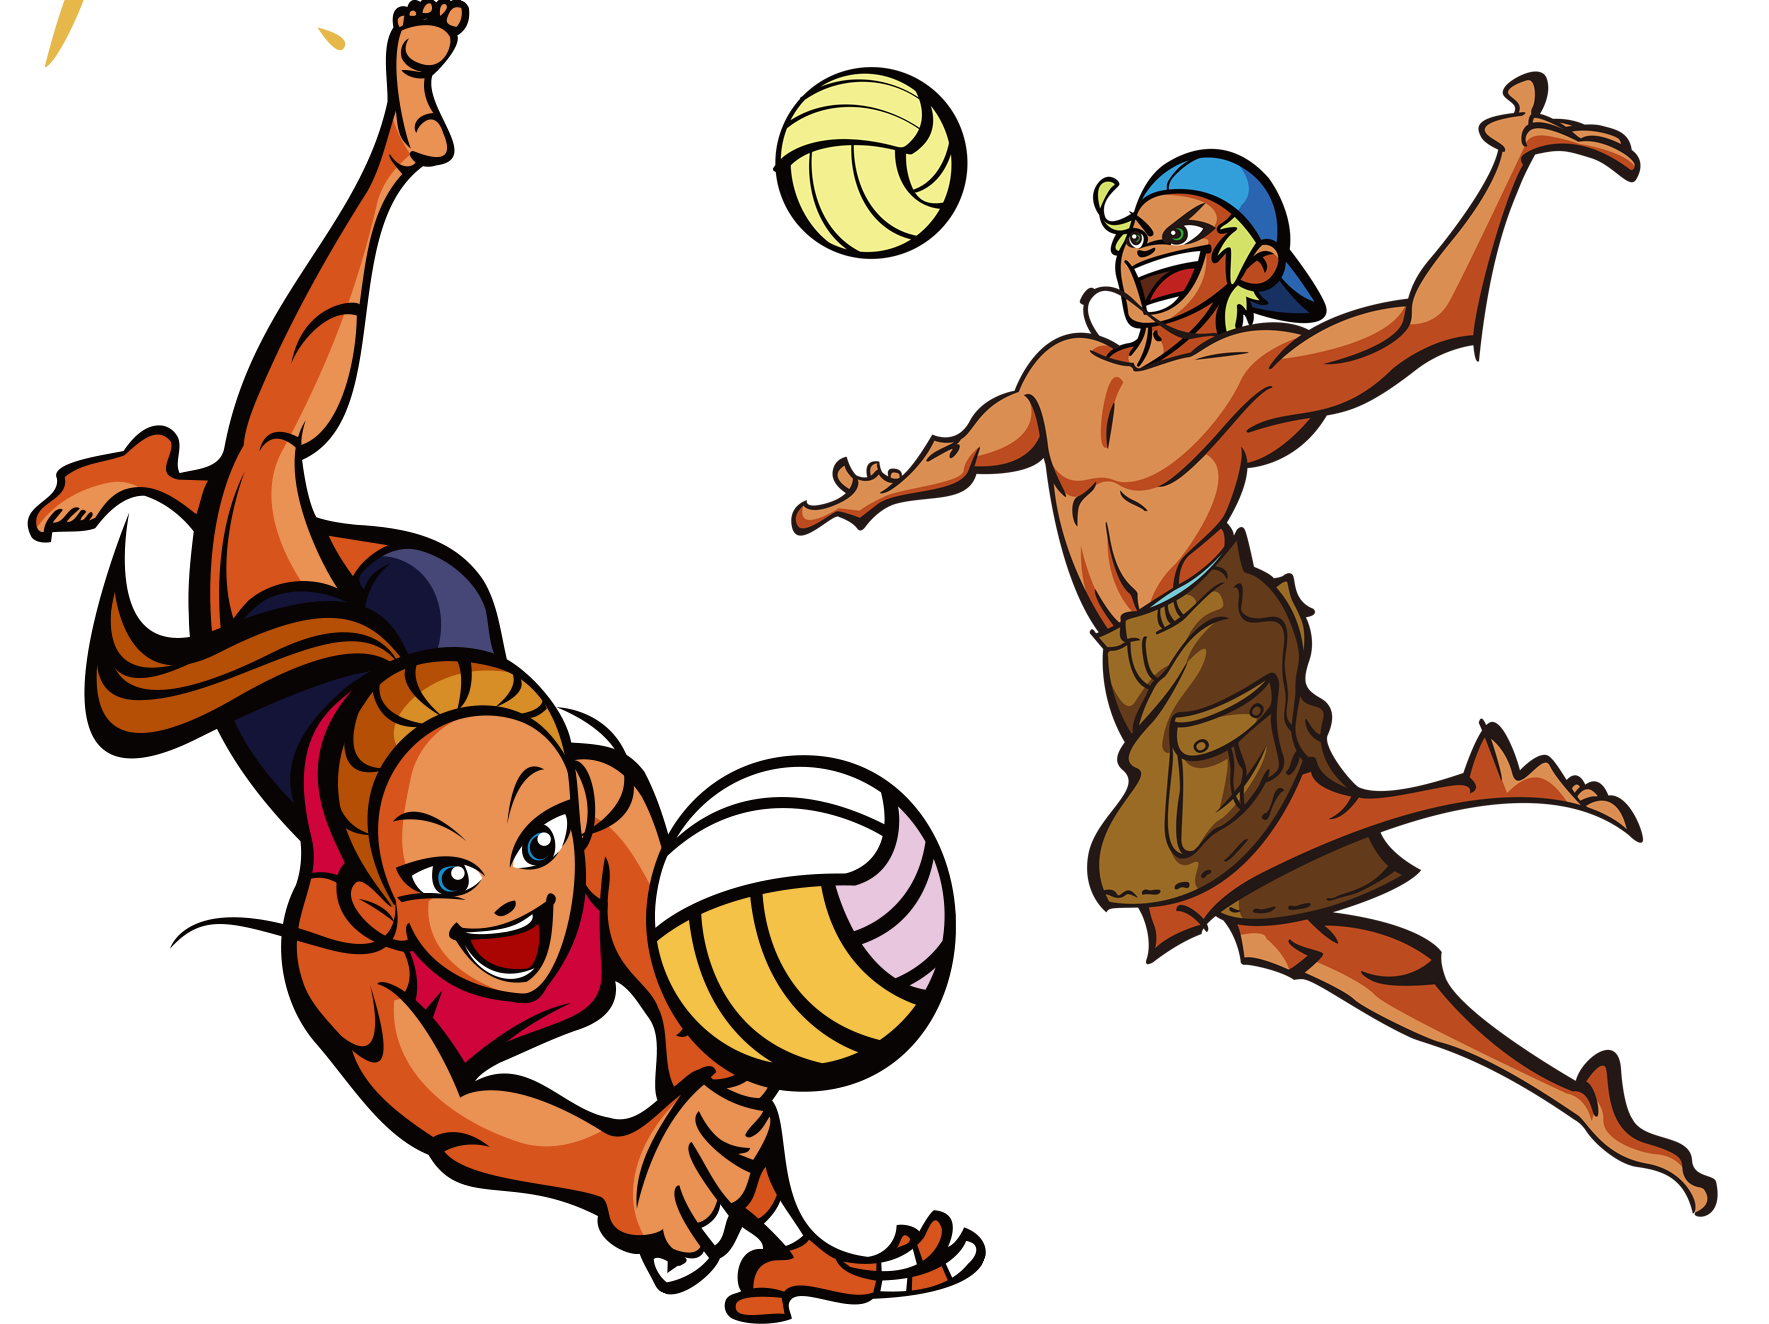 Dig Clipart Volleyball Dig Volleyball Transparent Free For Download On Webstockreview 2020